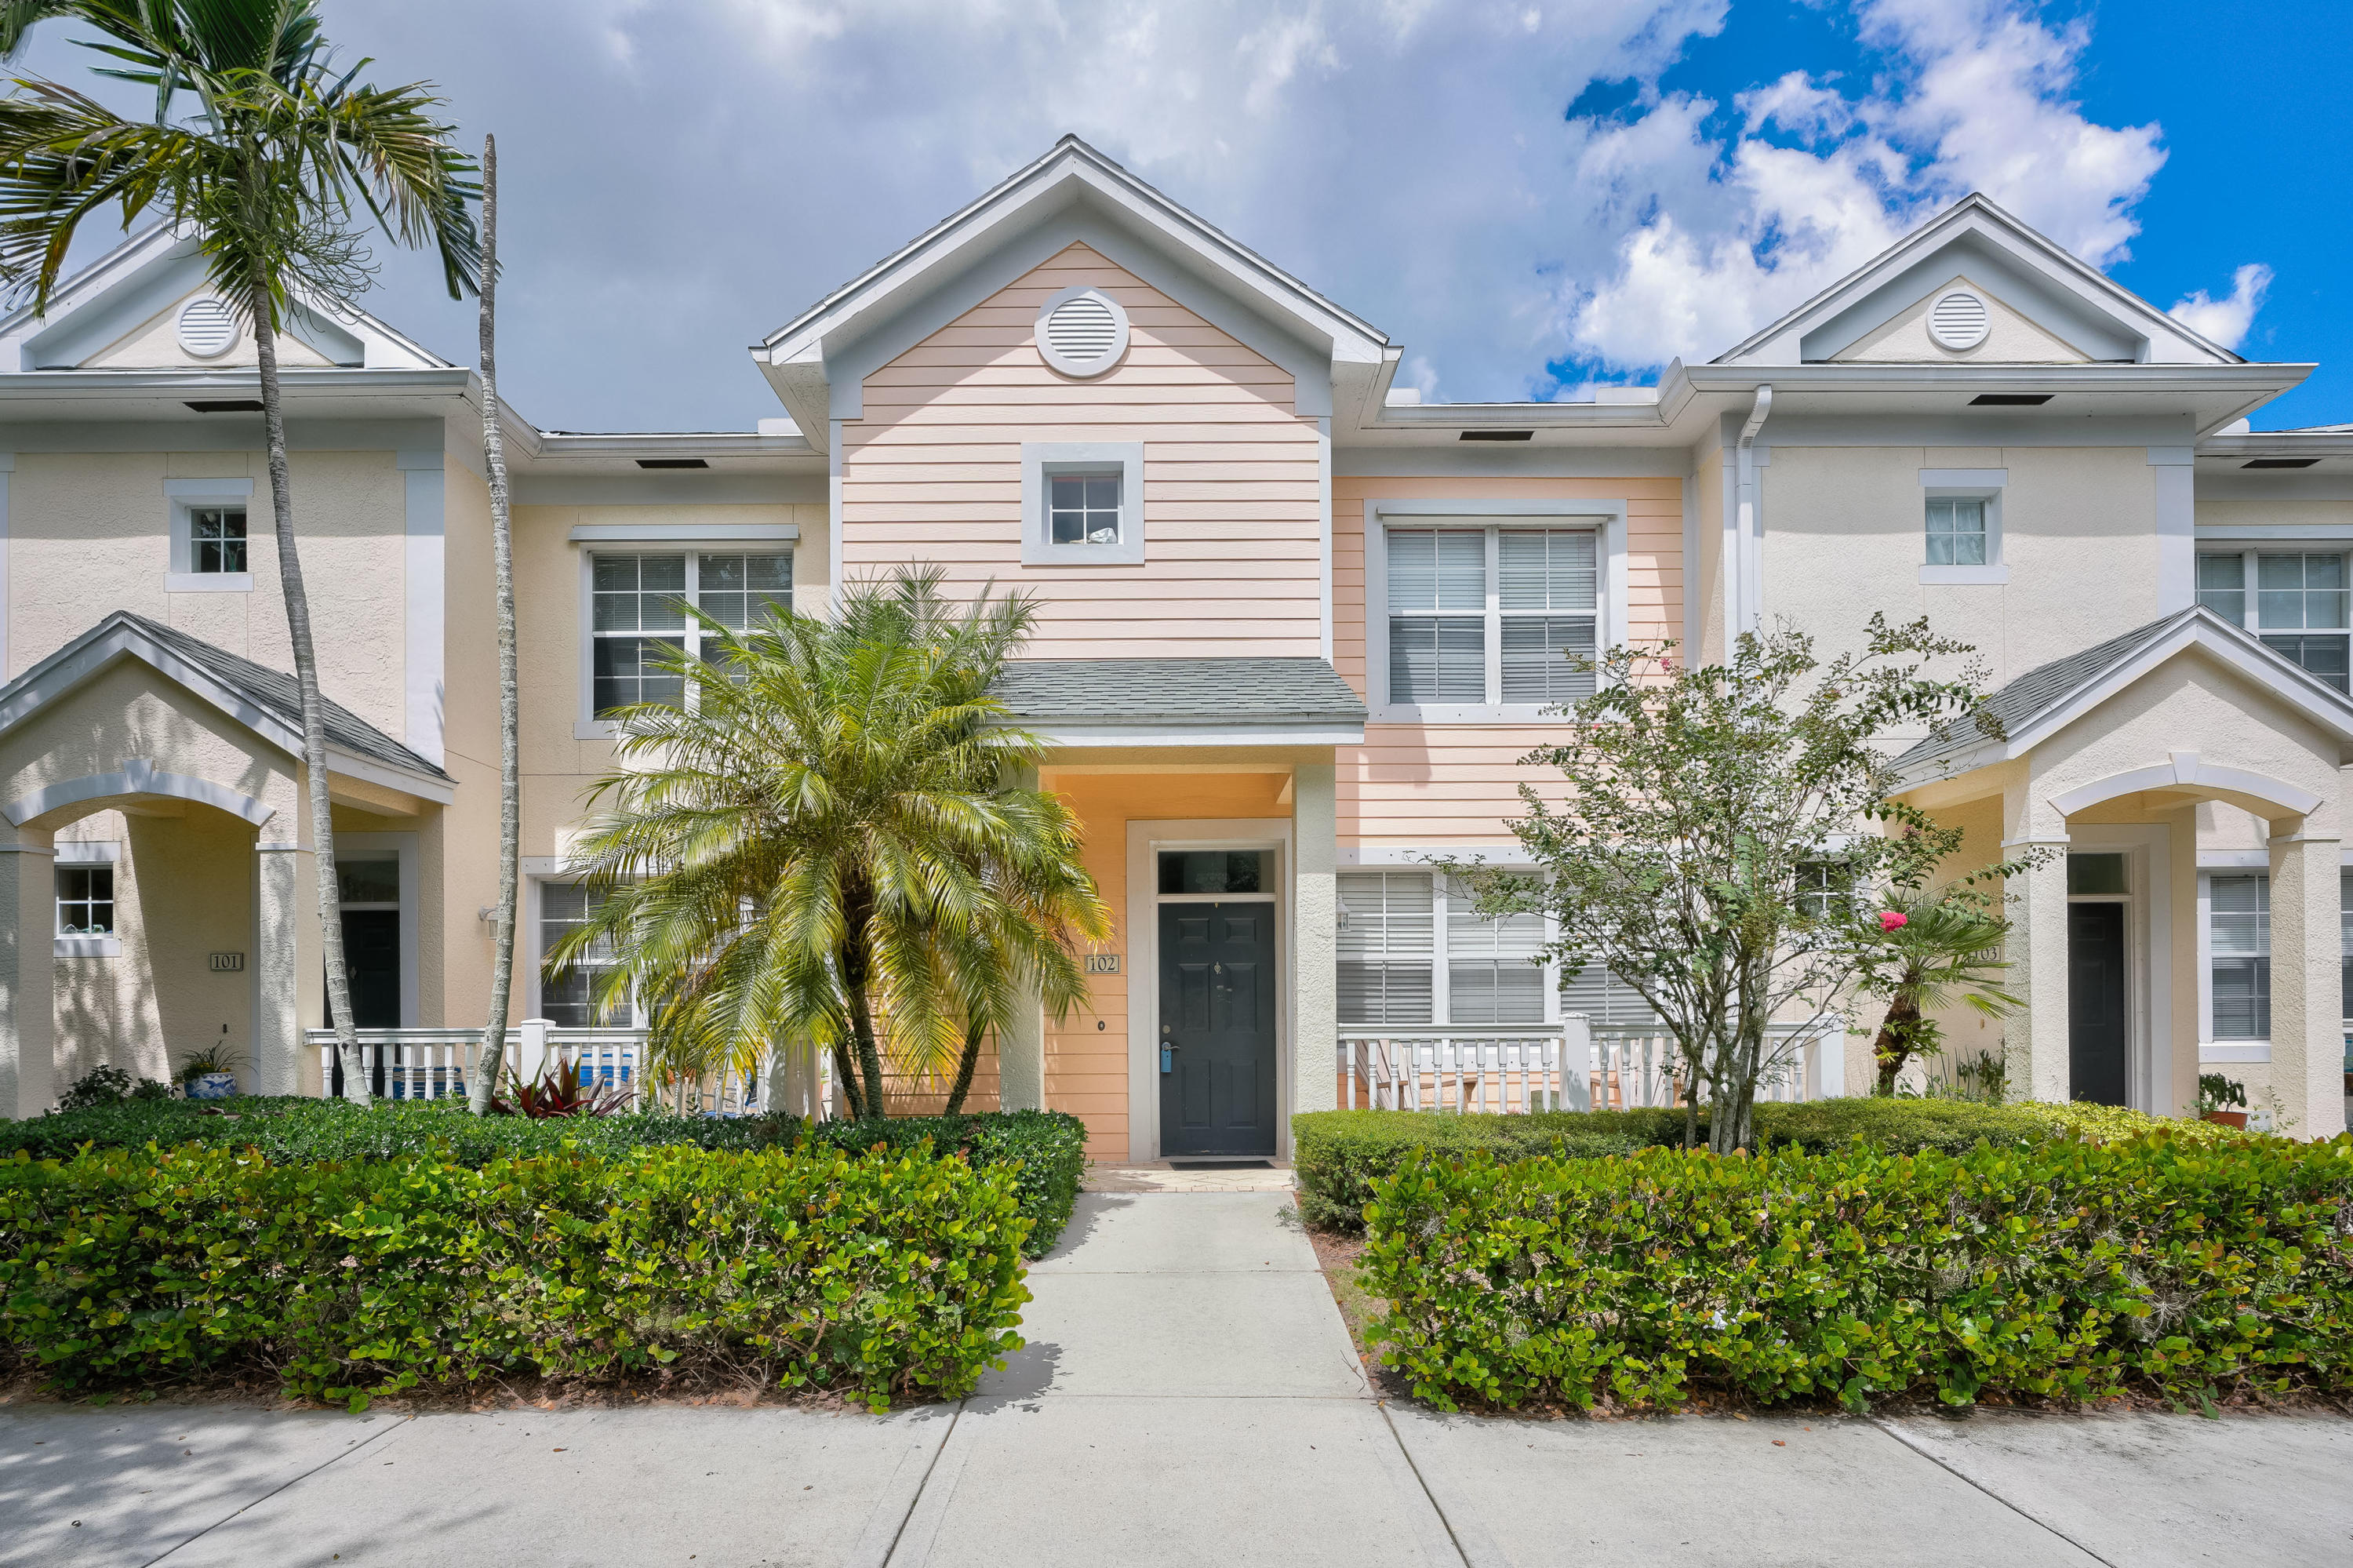 121 Santiago Drive 102, Jupiter, Florida 33458, 3 Bedrooms Bedrooms, ,2.1 BathroomsBathrooms,A,Condominium,Santiago,RX-10445972